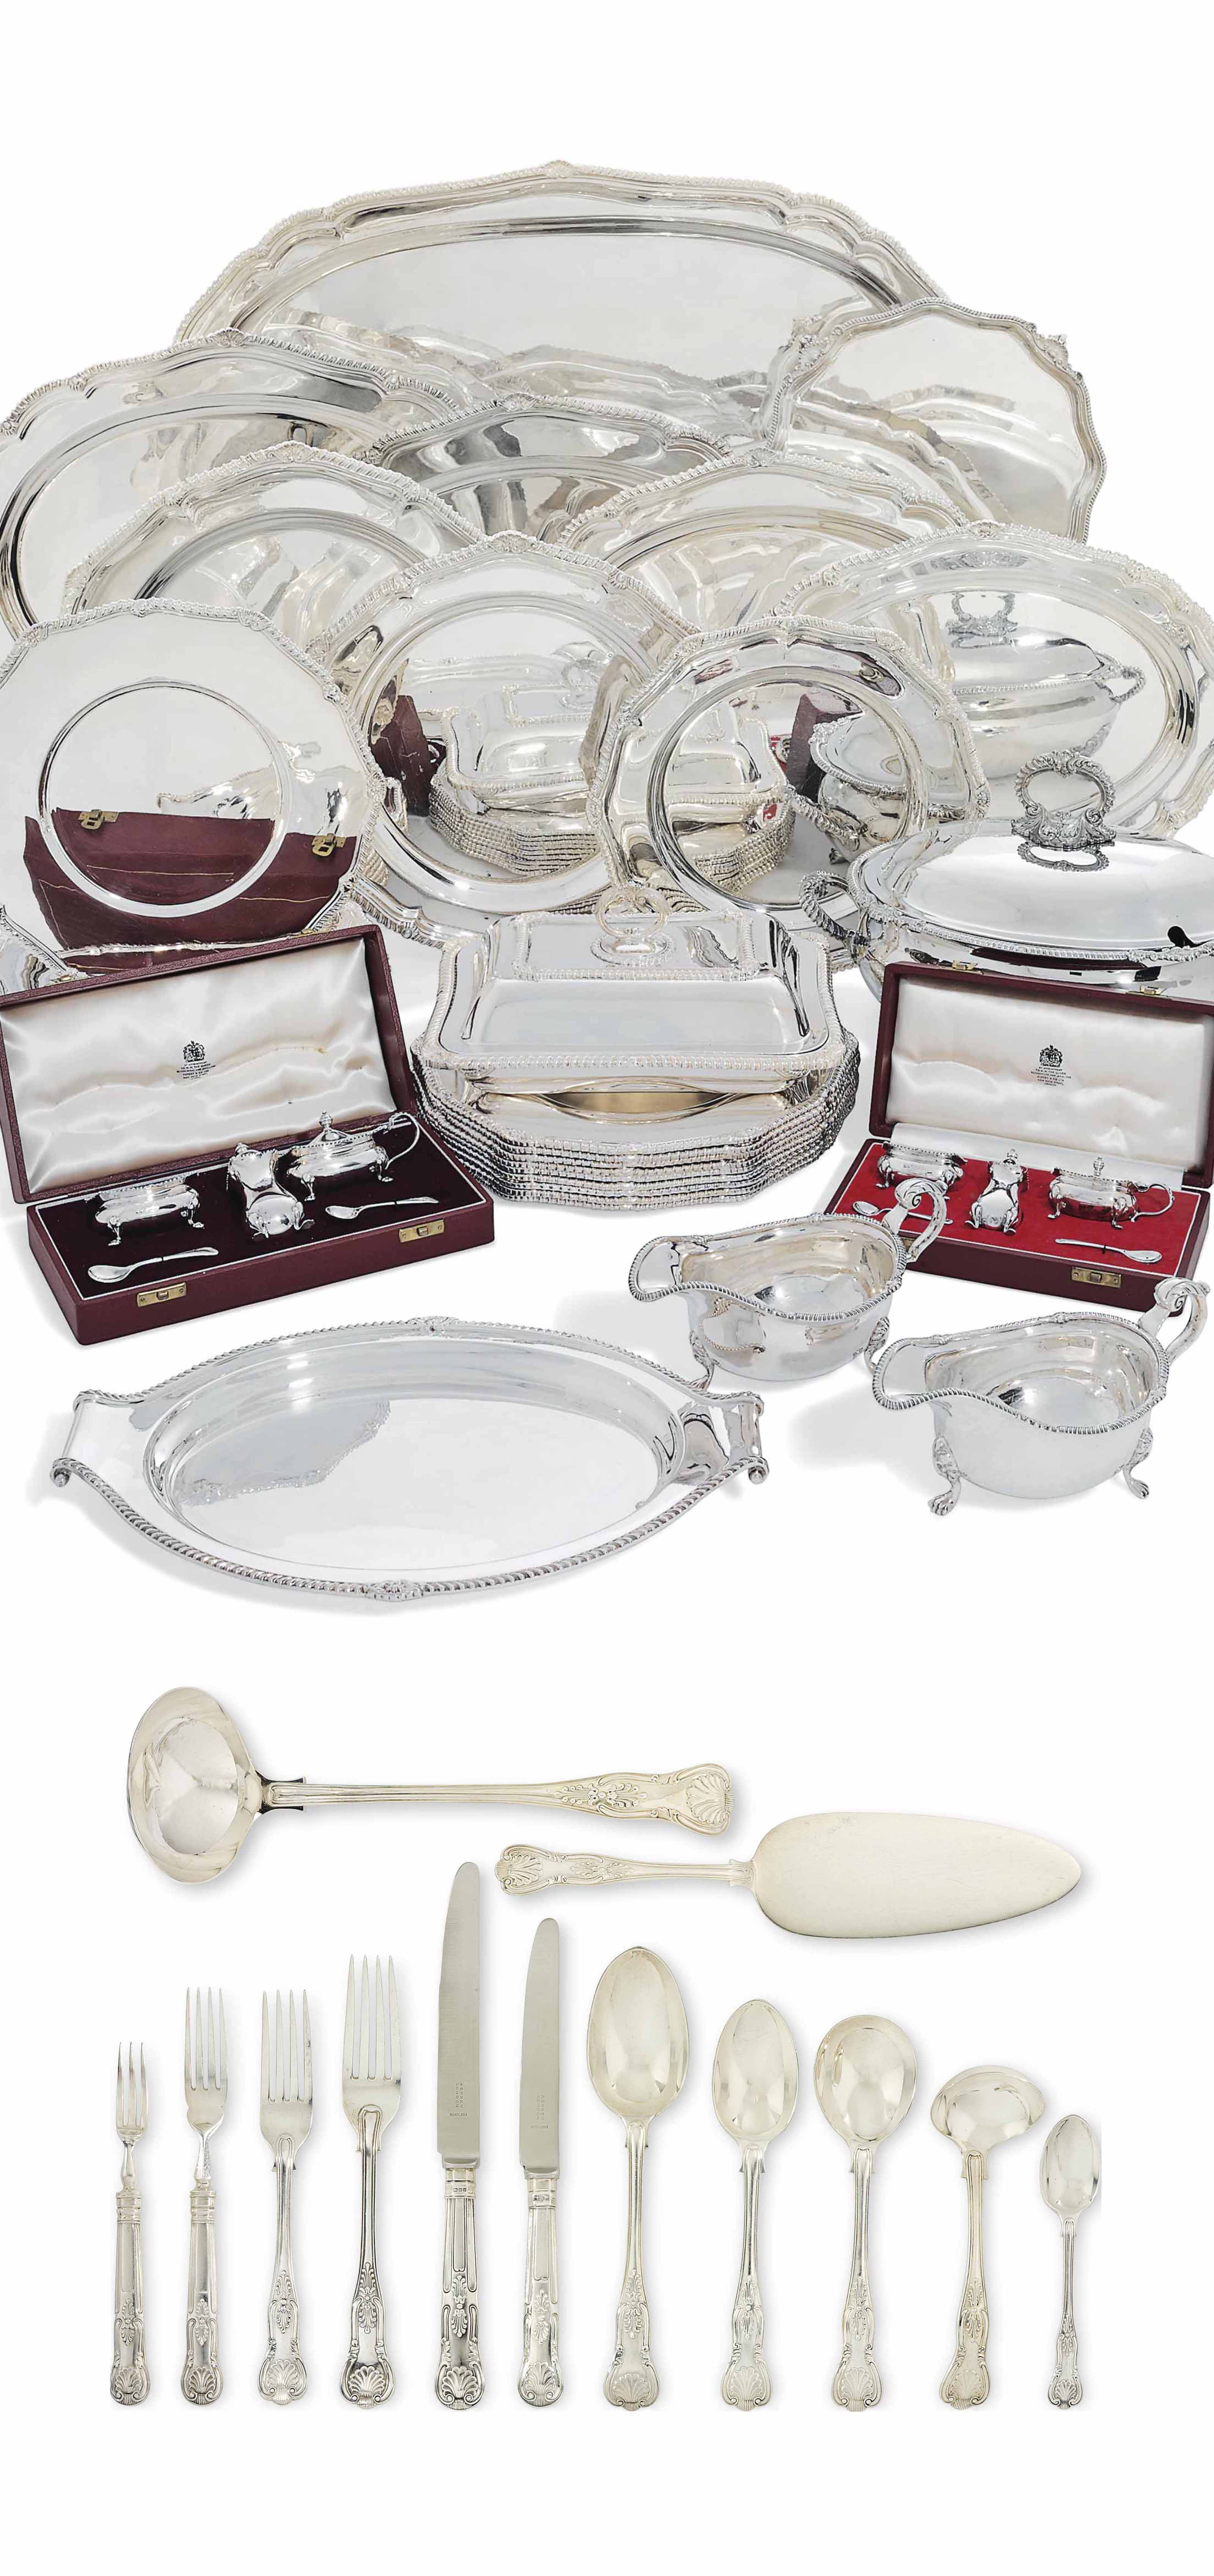 AN EXTENSIVE ELIZABETH II SILVER DINNER-SERVICE AND TABLE-SERVICE